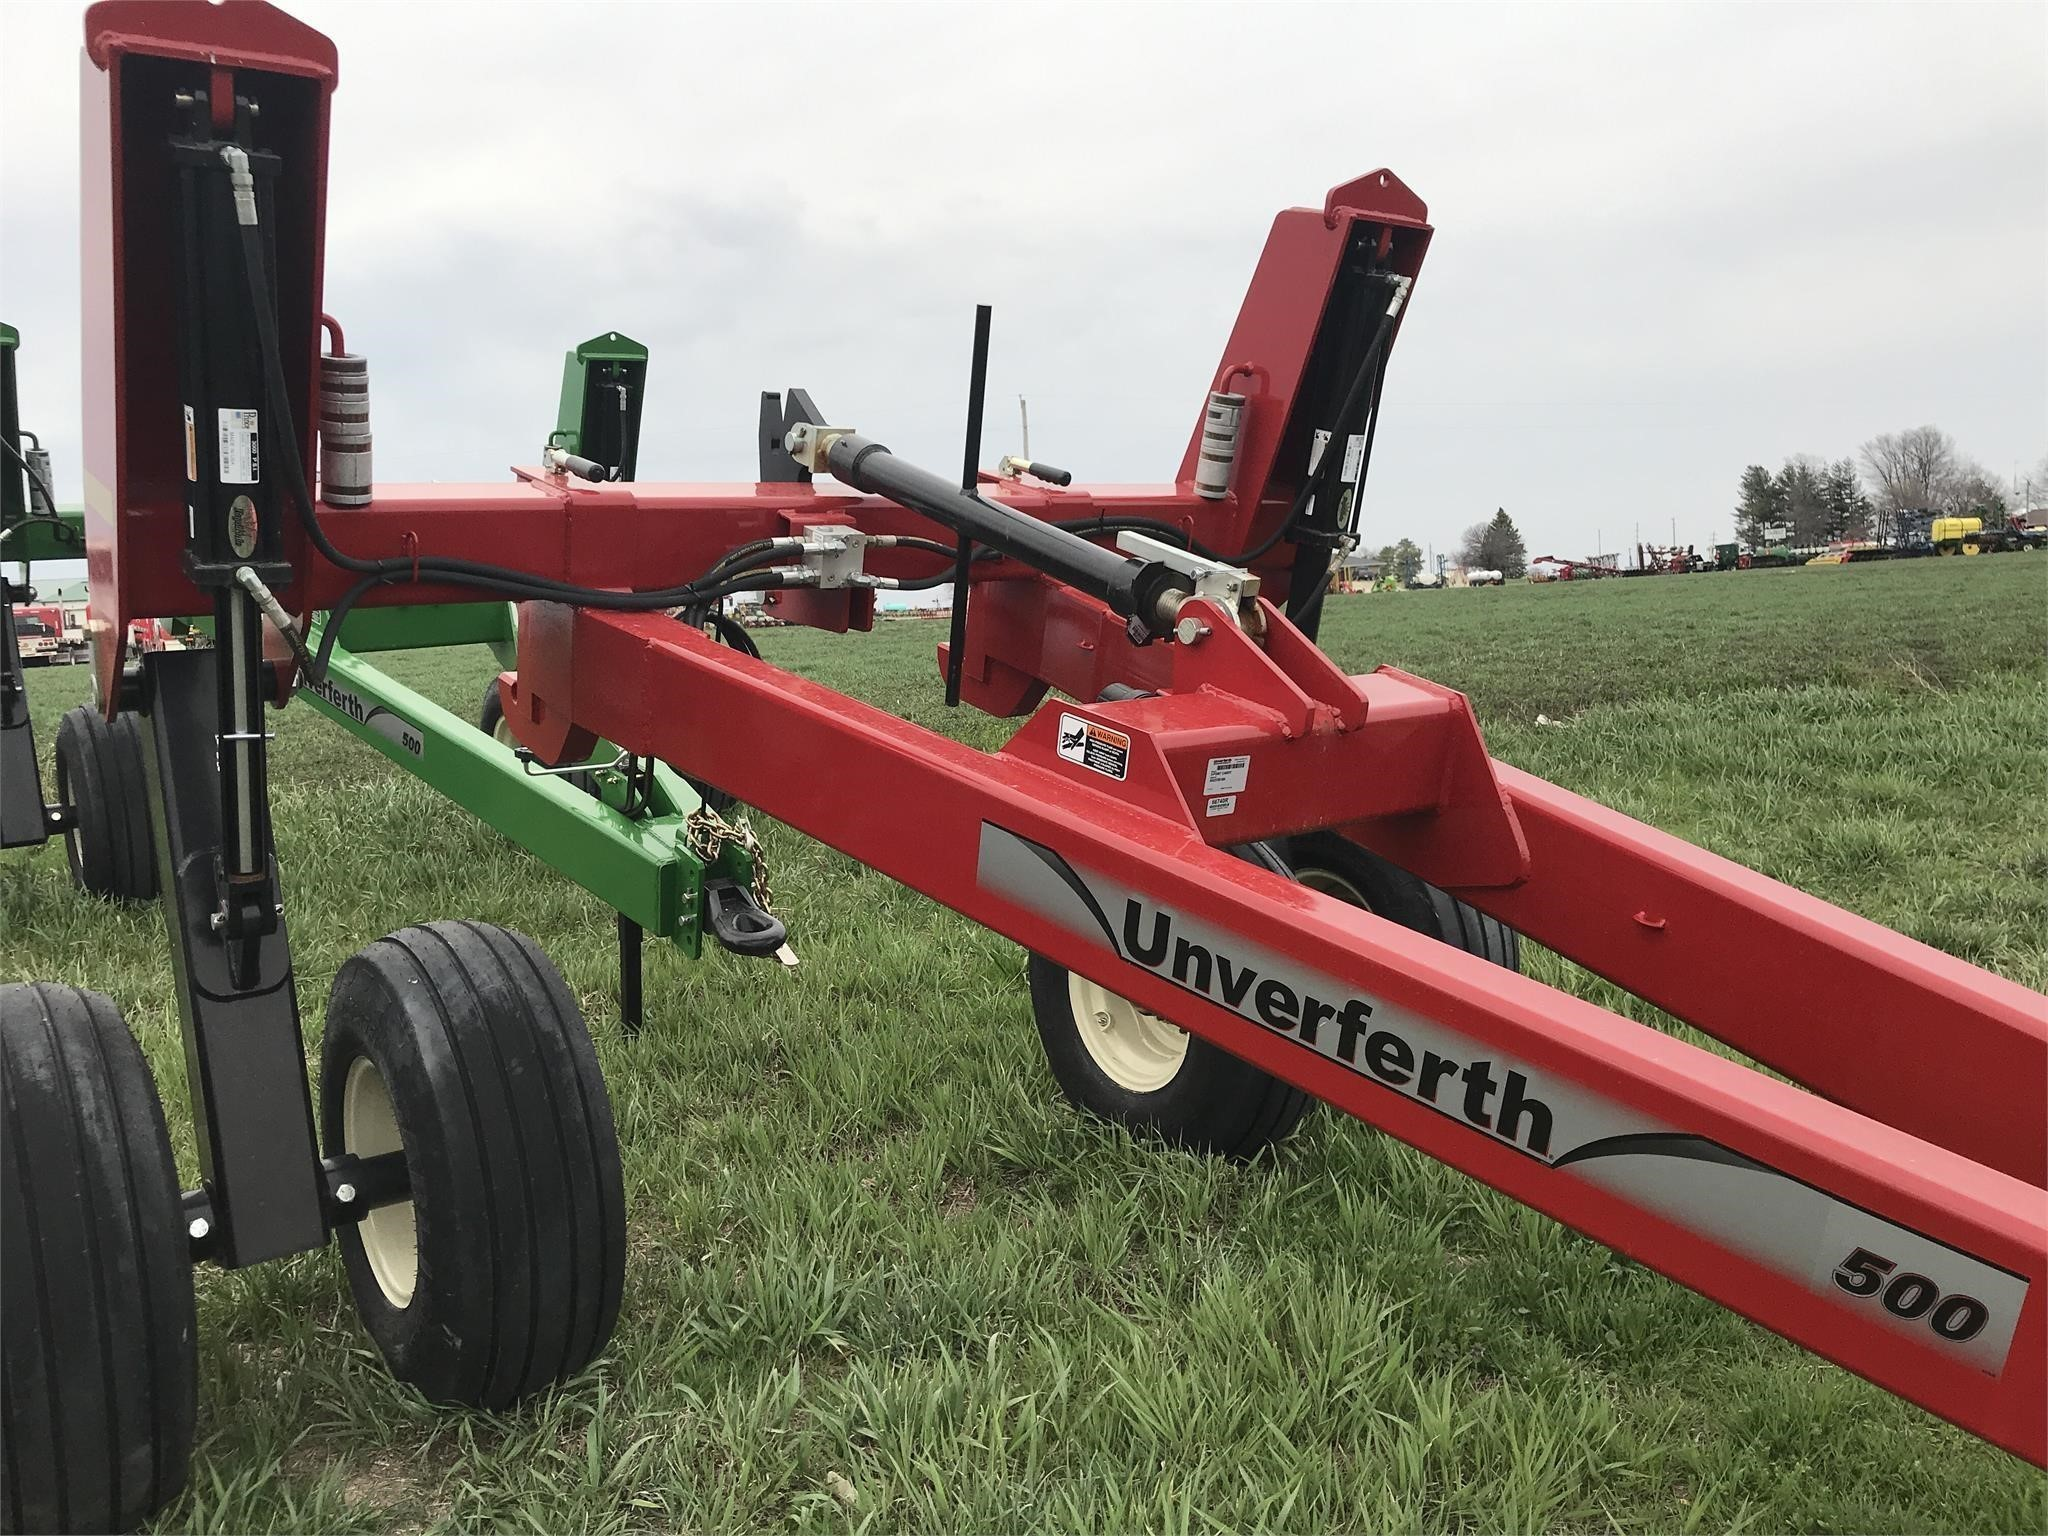 2019 Unverferth 500 Implement Caddy